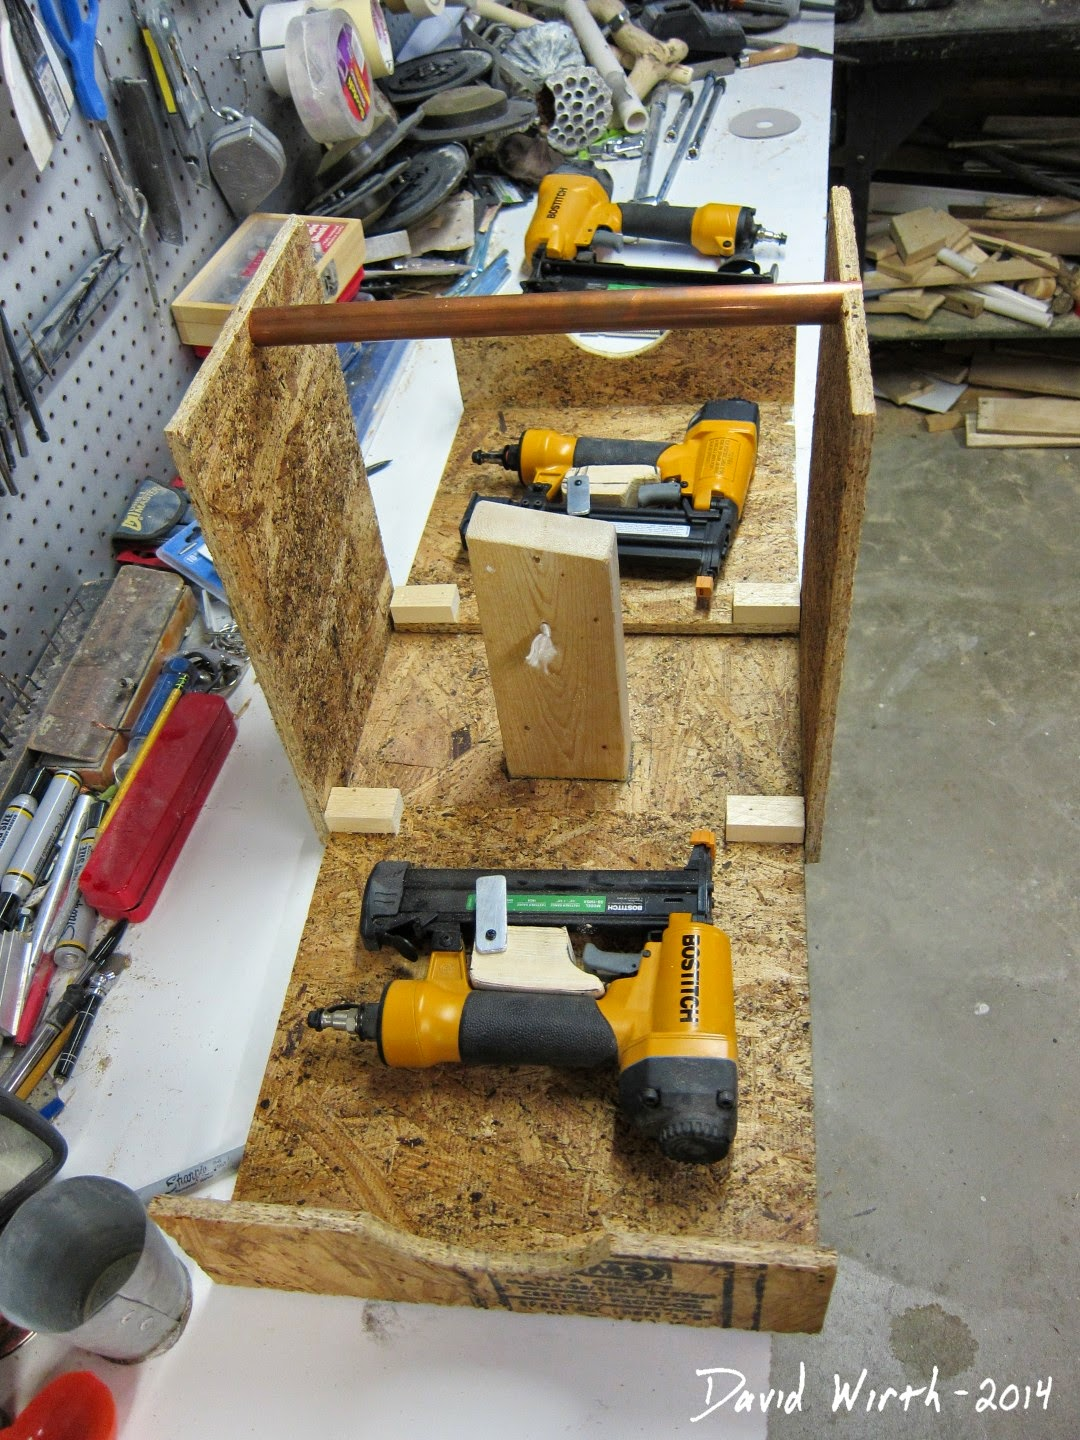 how to build a case, nail guns, 3, tool box, clamshell